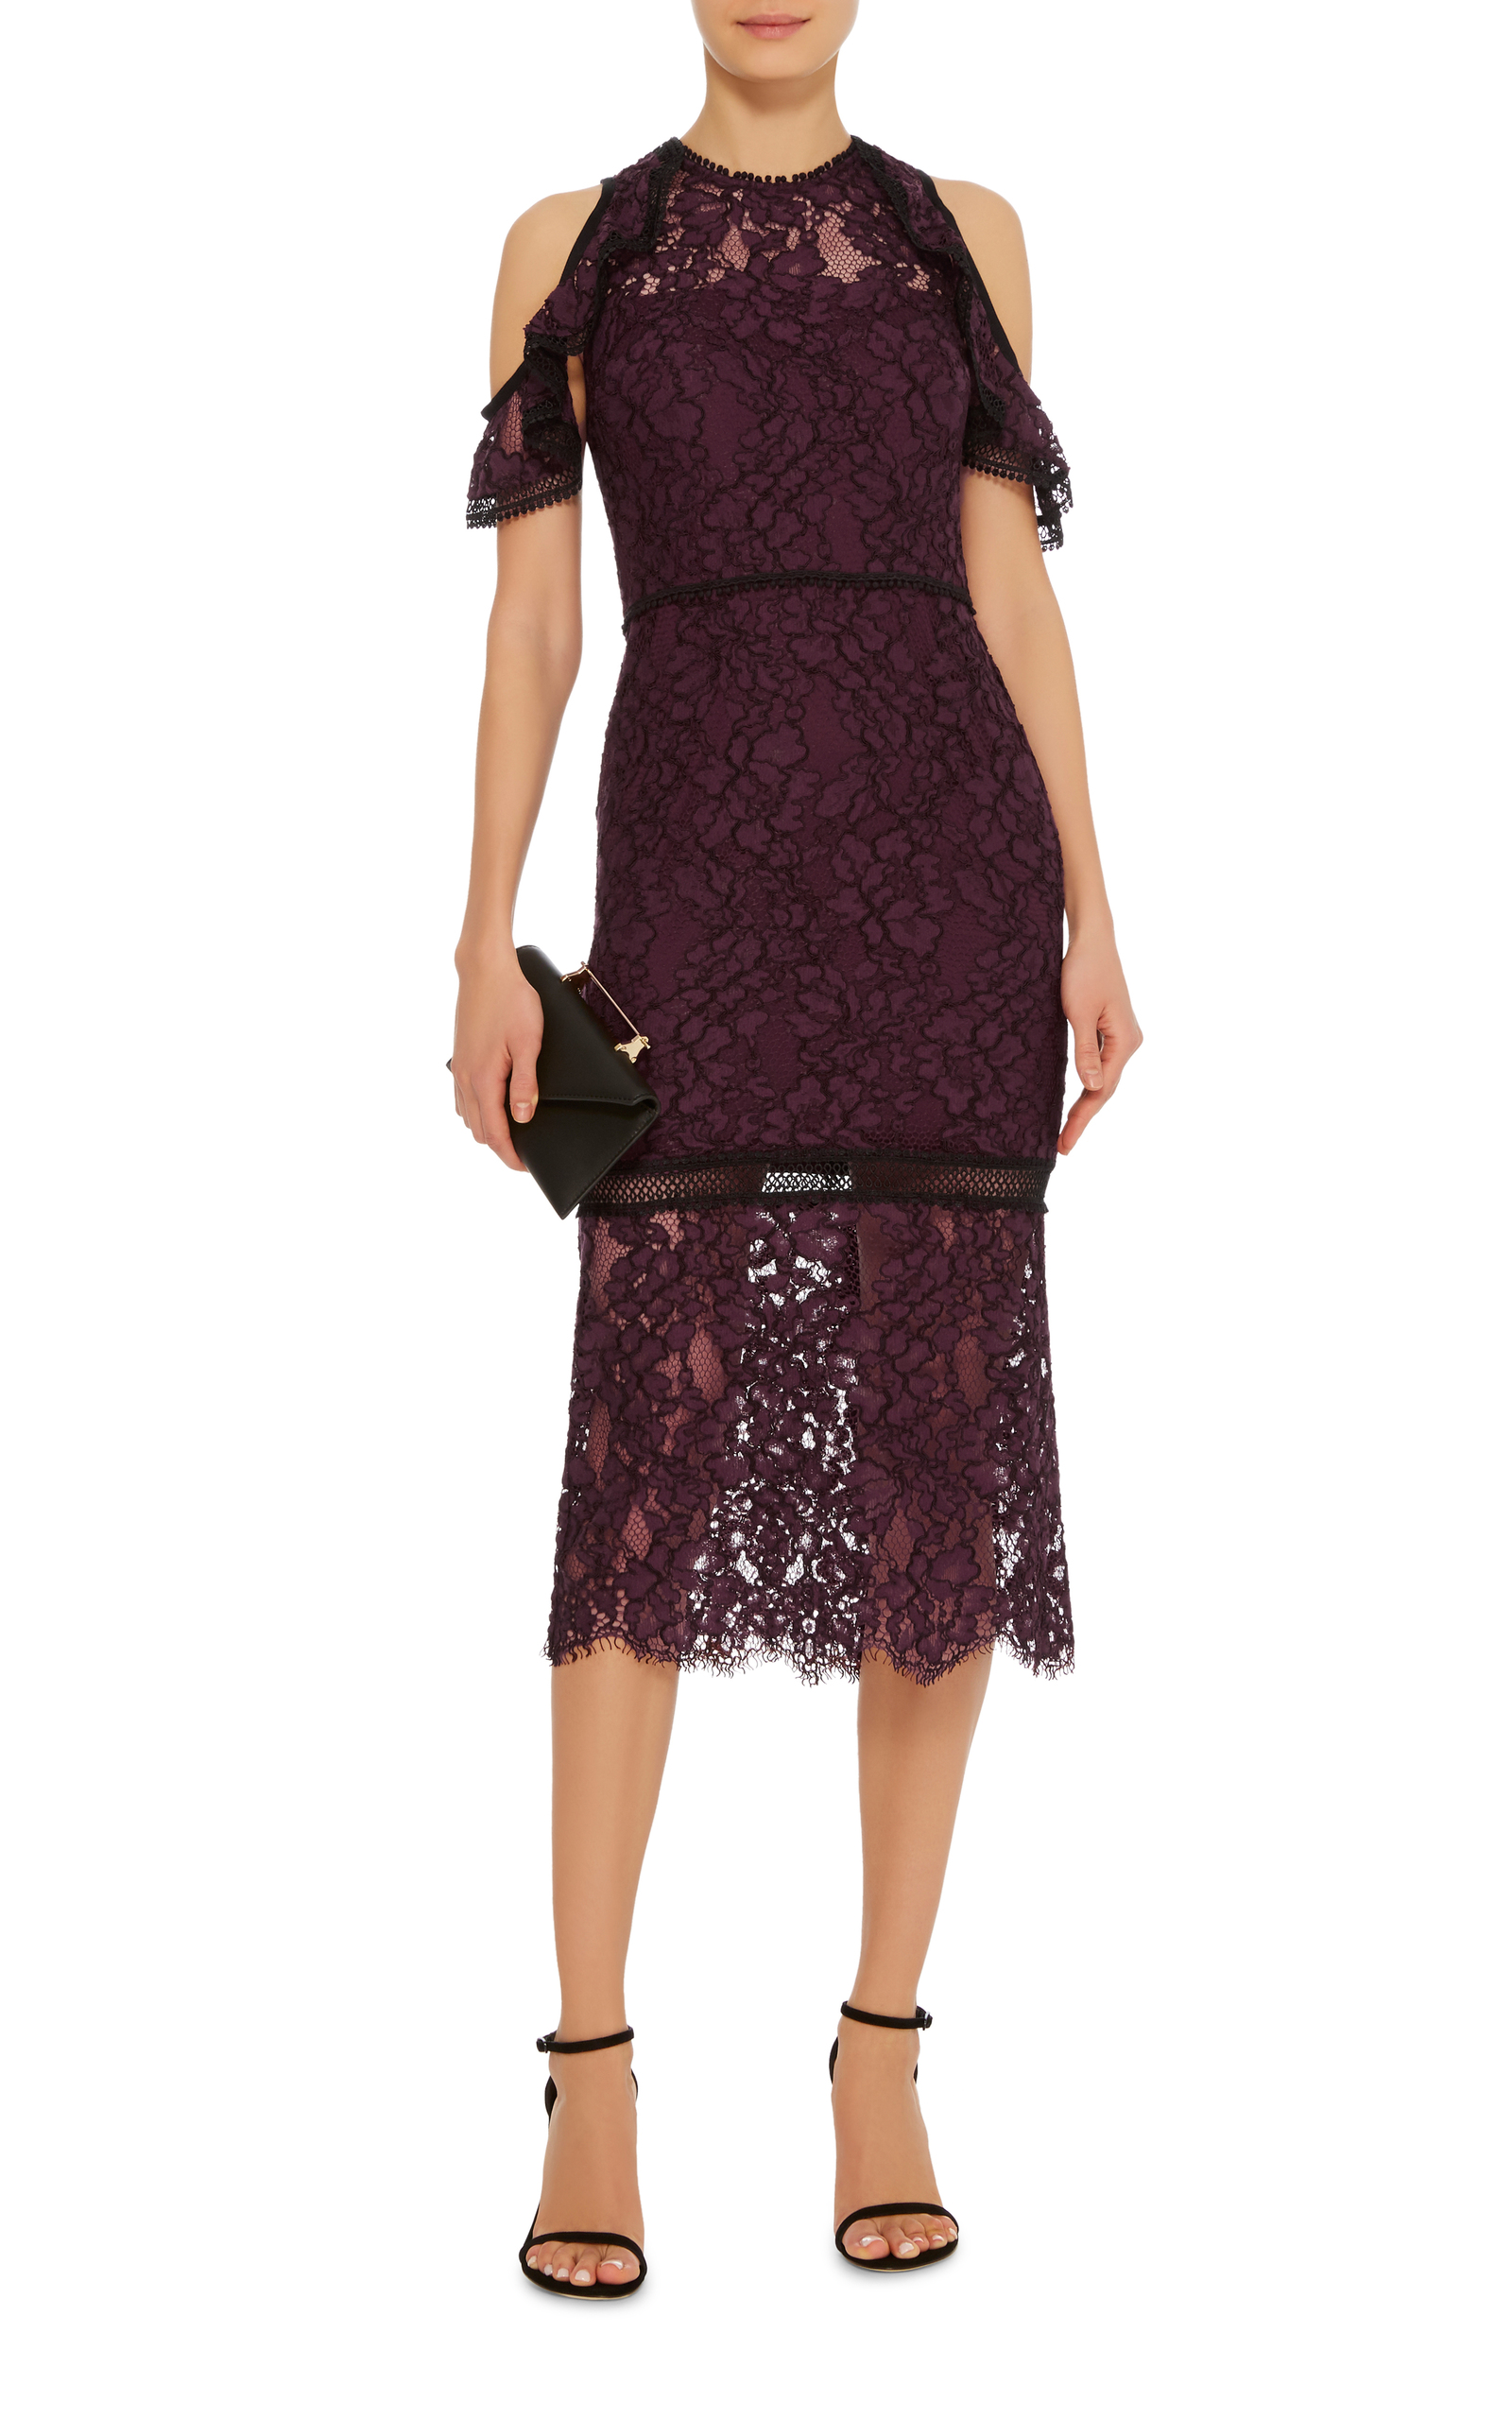 Evie Cold Shoulder Lace Dress By Alexis Moda Operandi